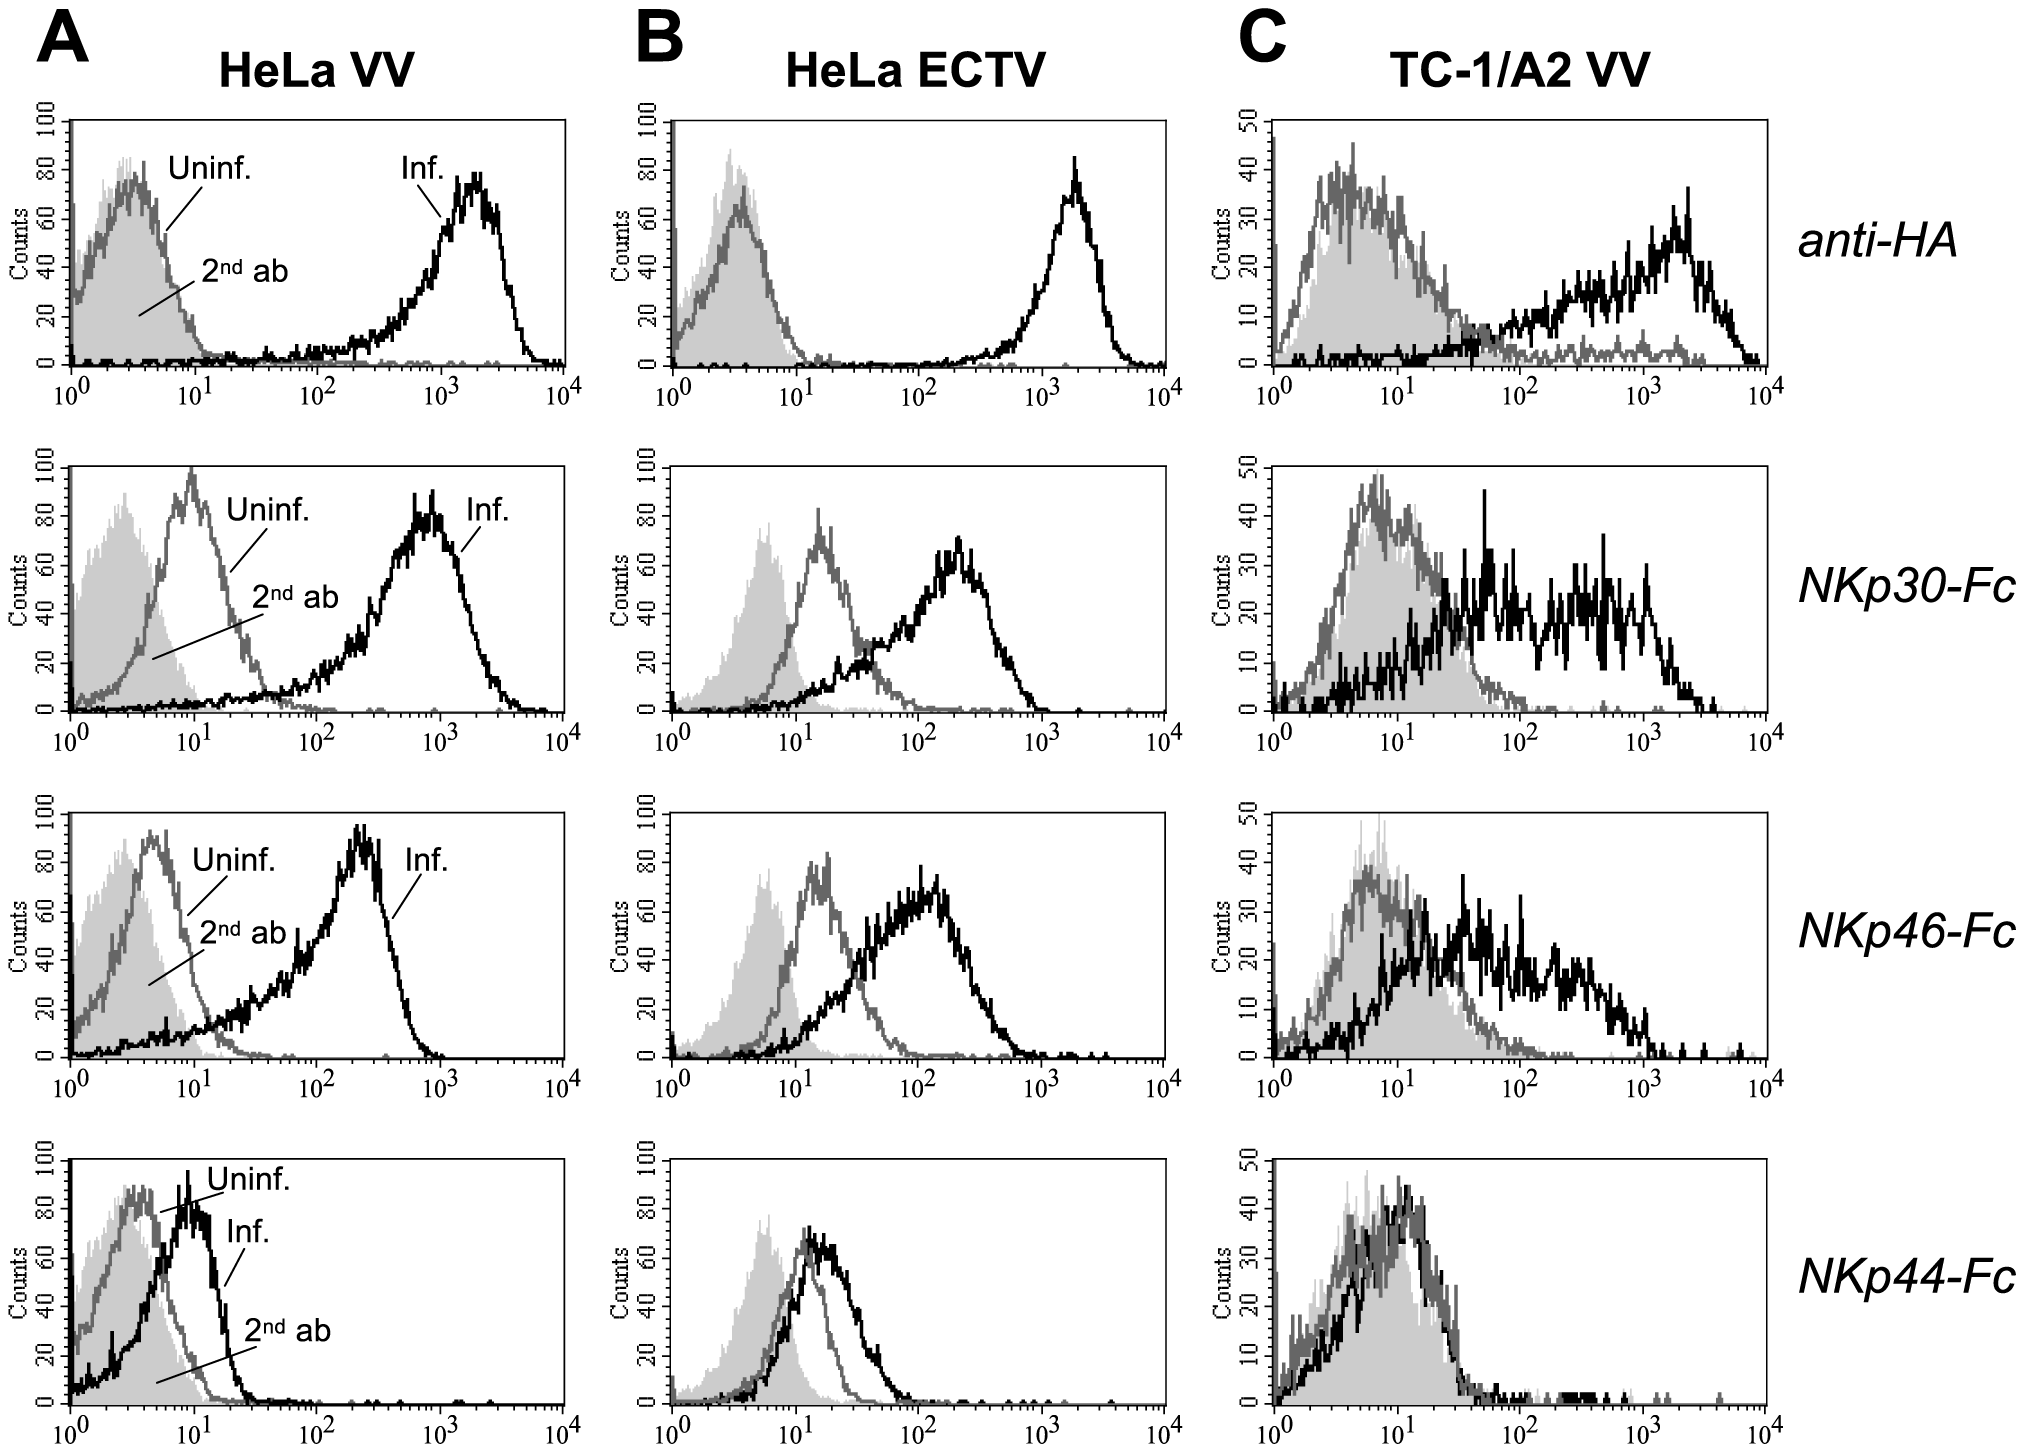 Infection with vaccinia (VV) and ectromelia virus (ECTV) induces ligand structures for NKp30 and NKp46.